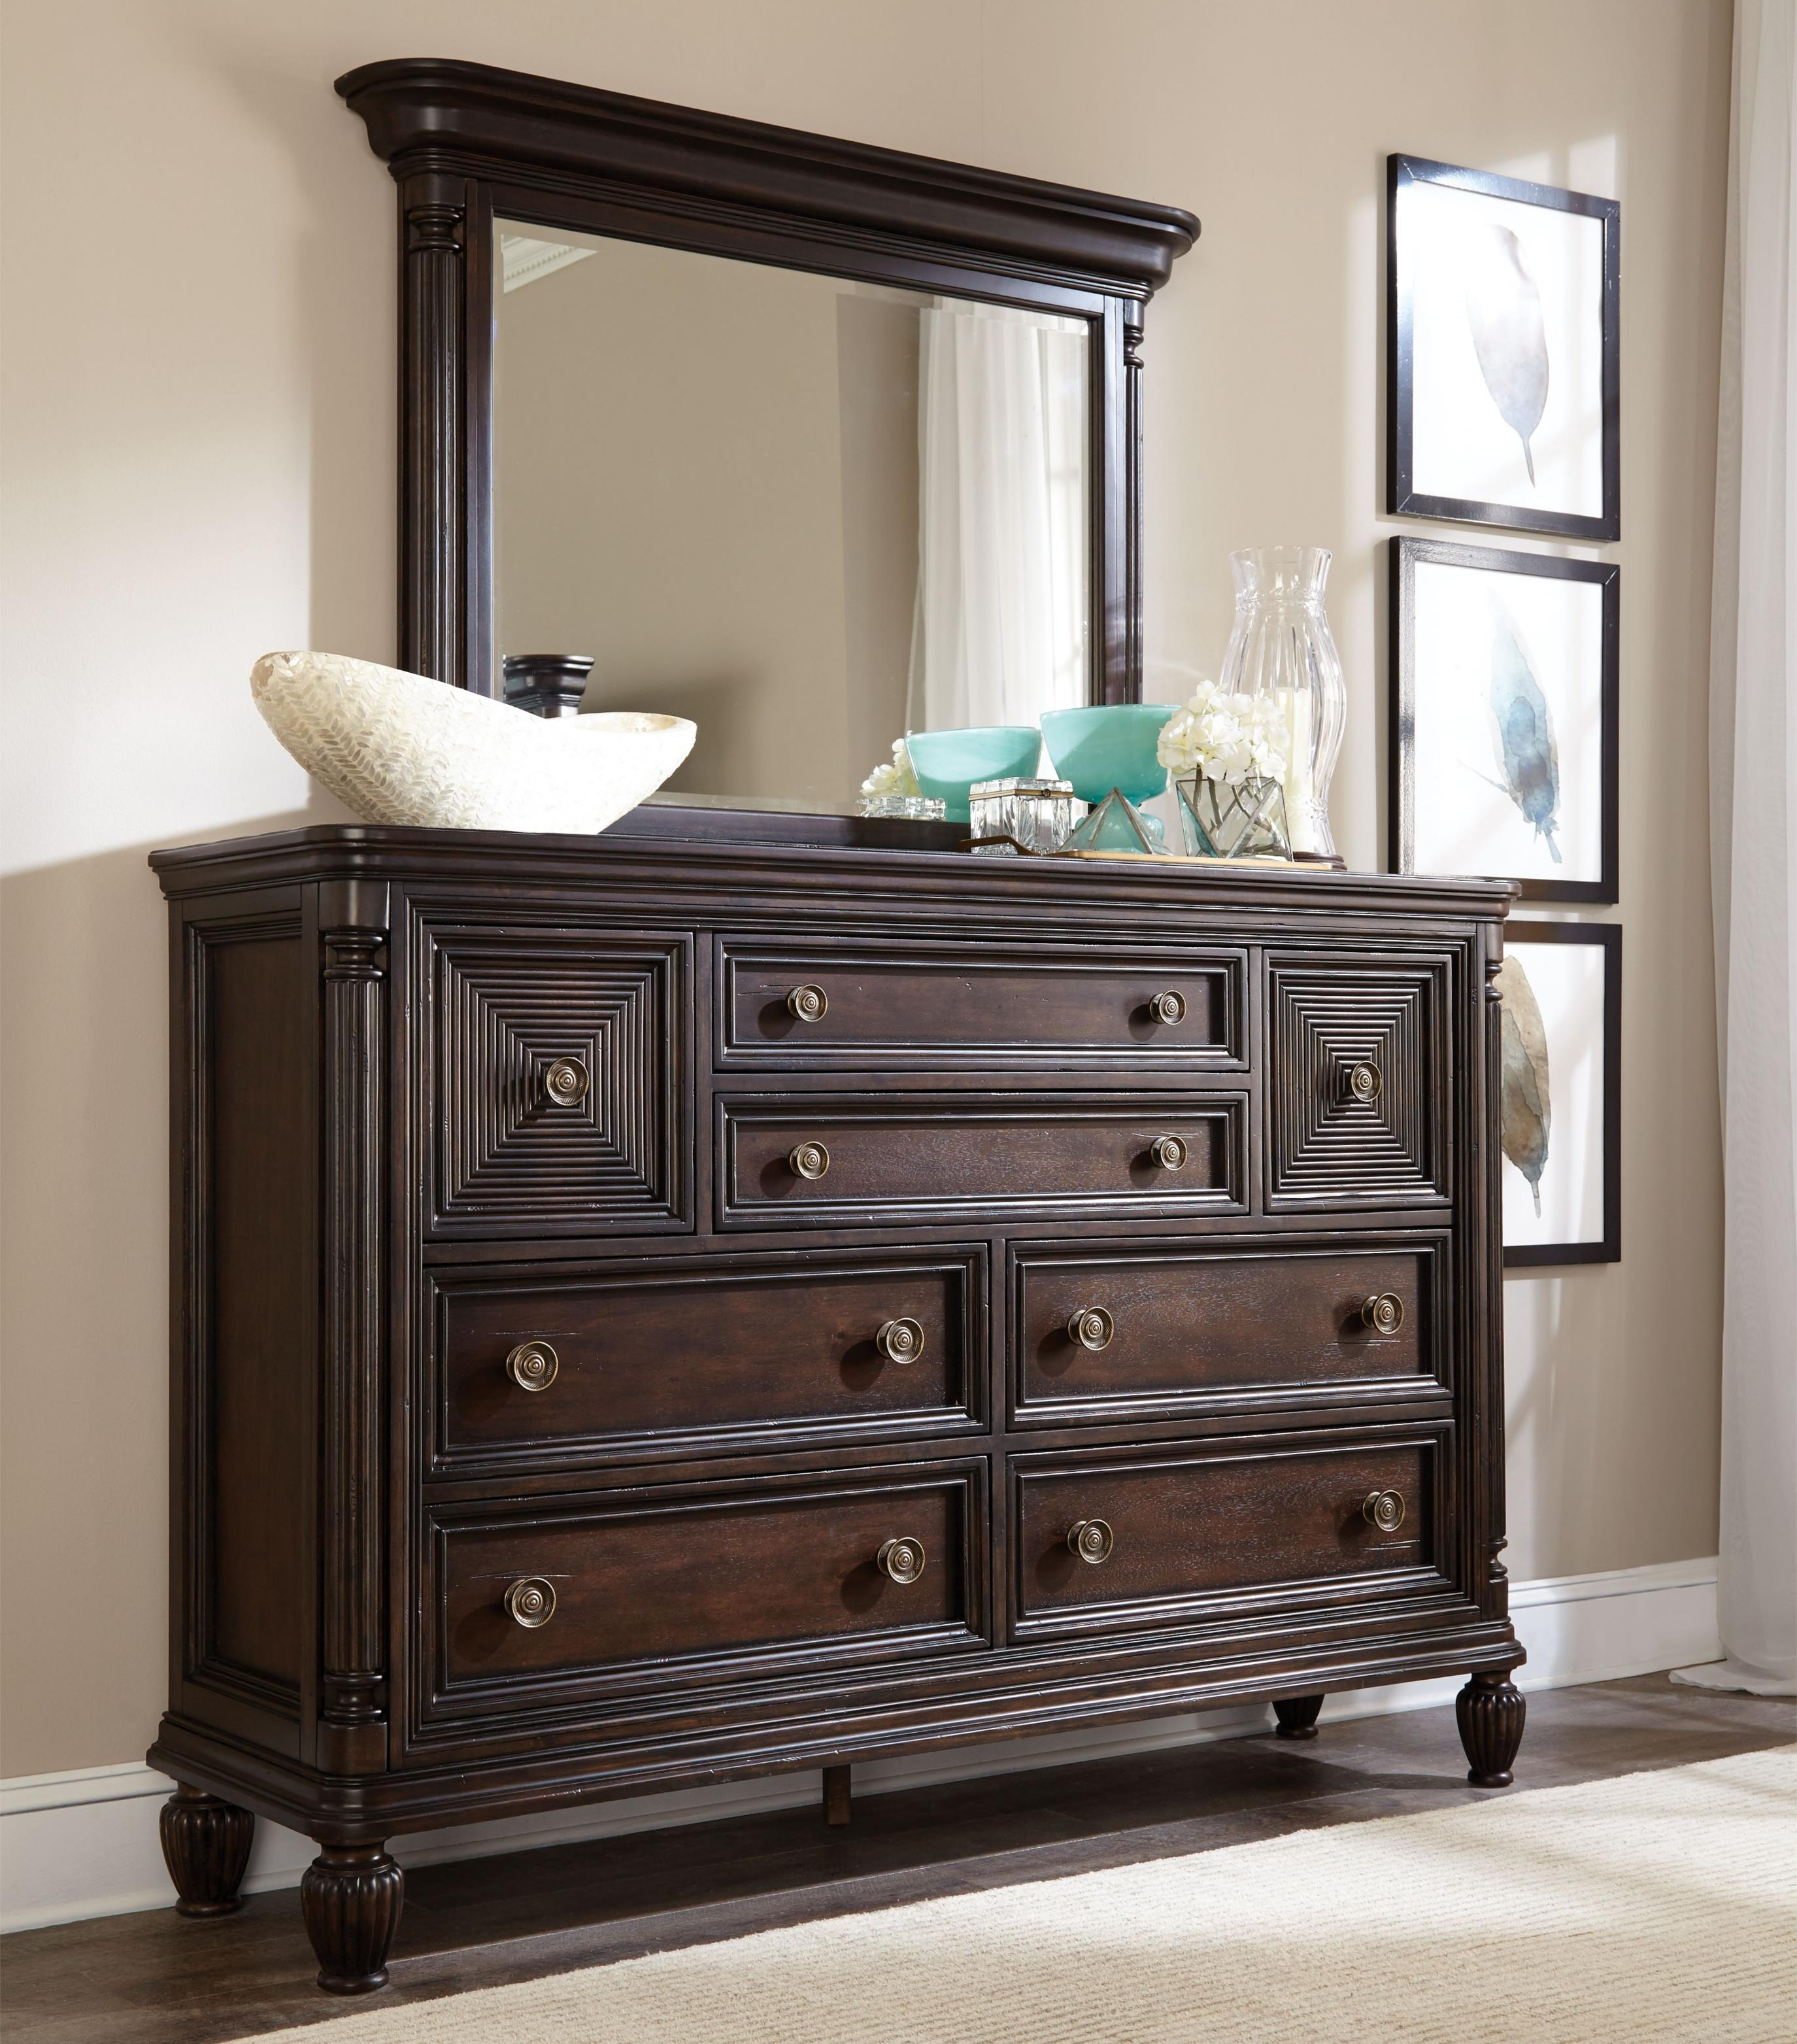 Broyhill Furniture Jessa Chesser and Mirror Combo - Item Number: 4980-234+236